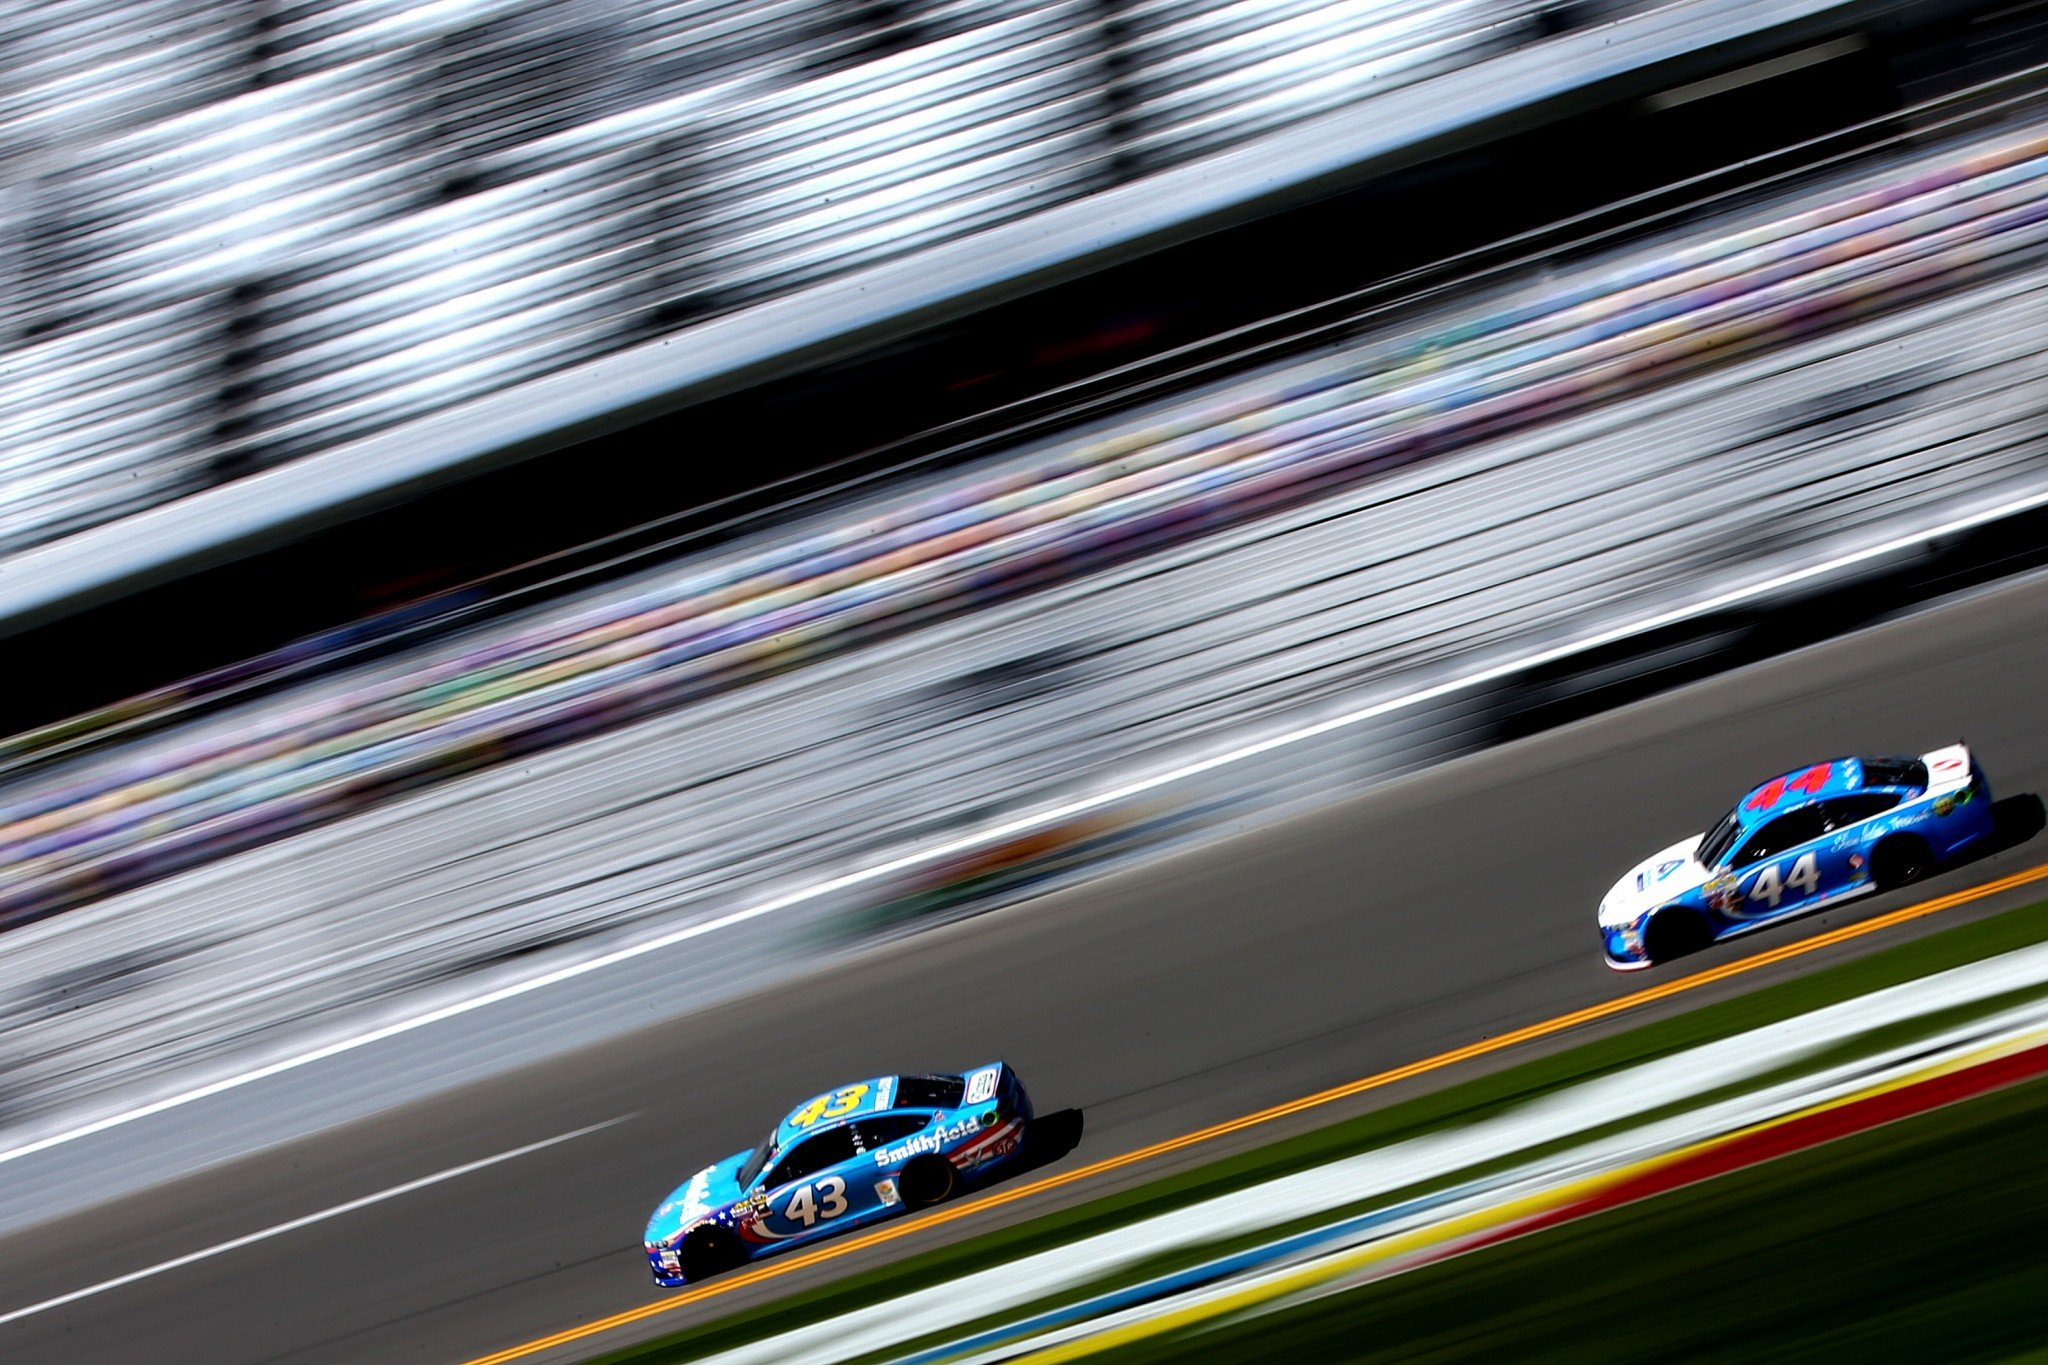 Aric Almirola and Brian Scott had their best finishes of the year at Talladega in the fall. (Getty)